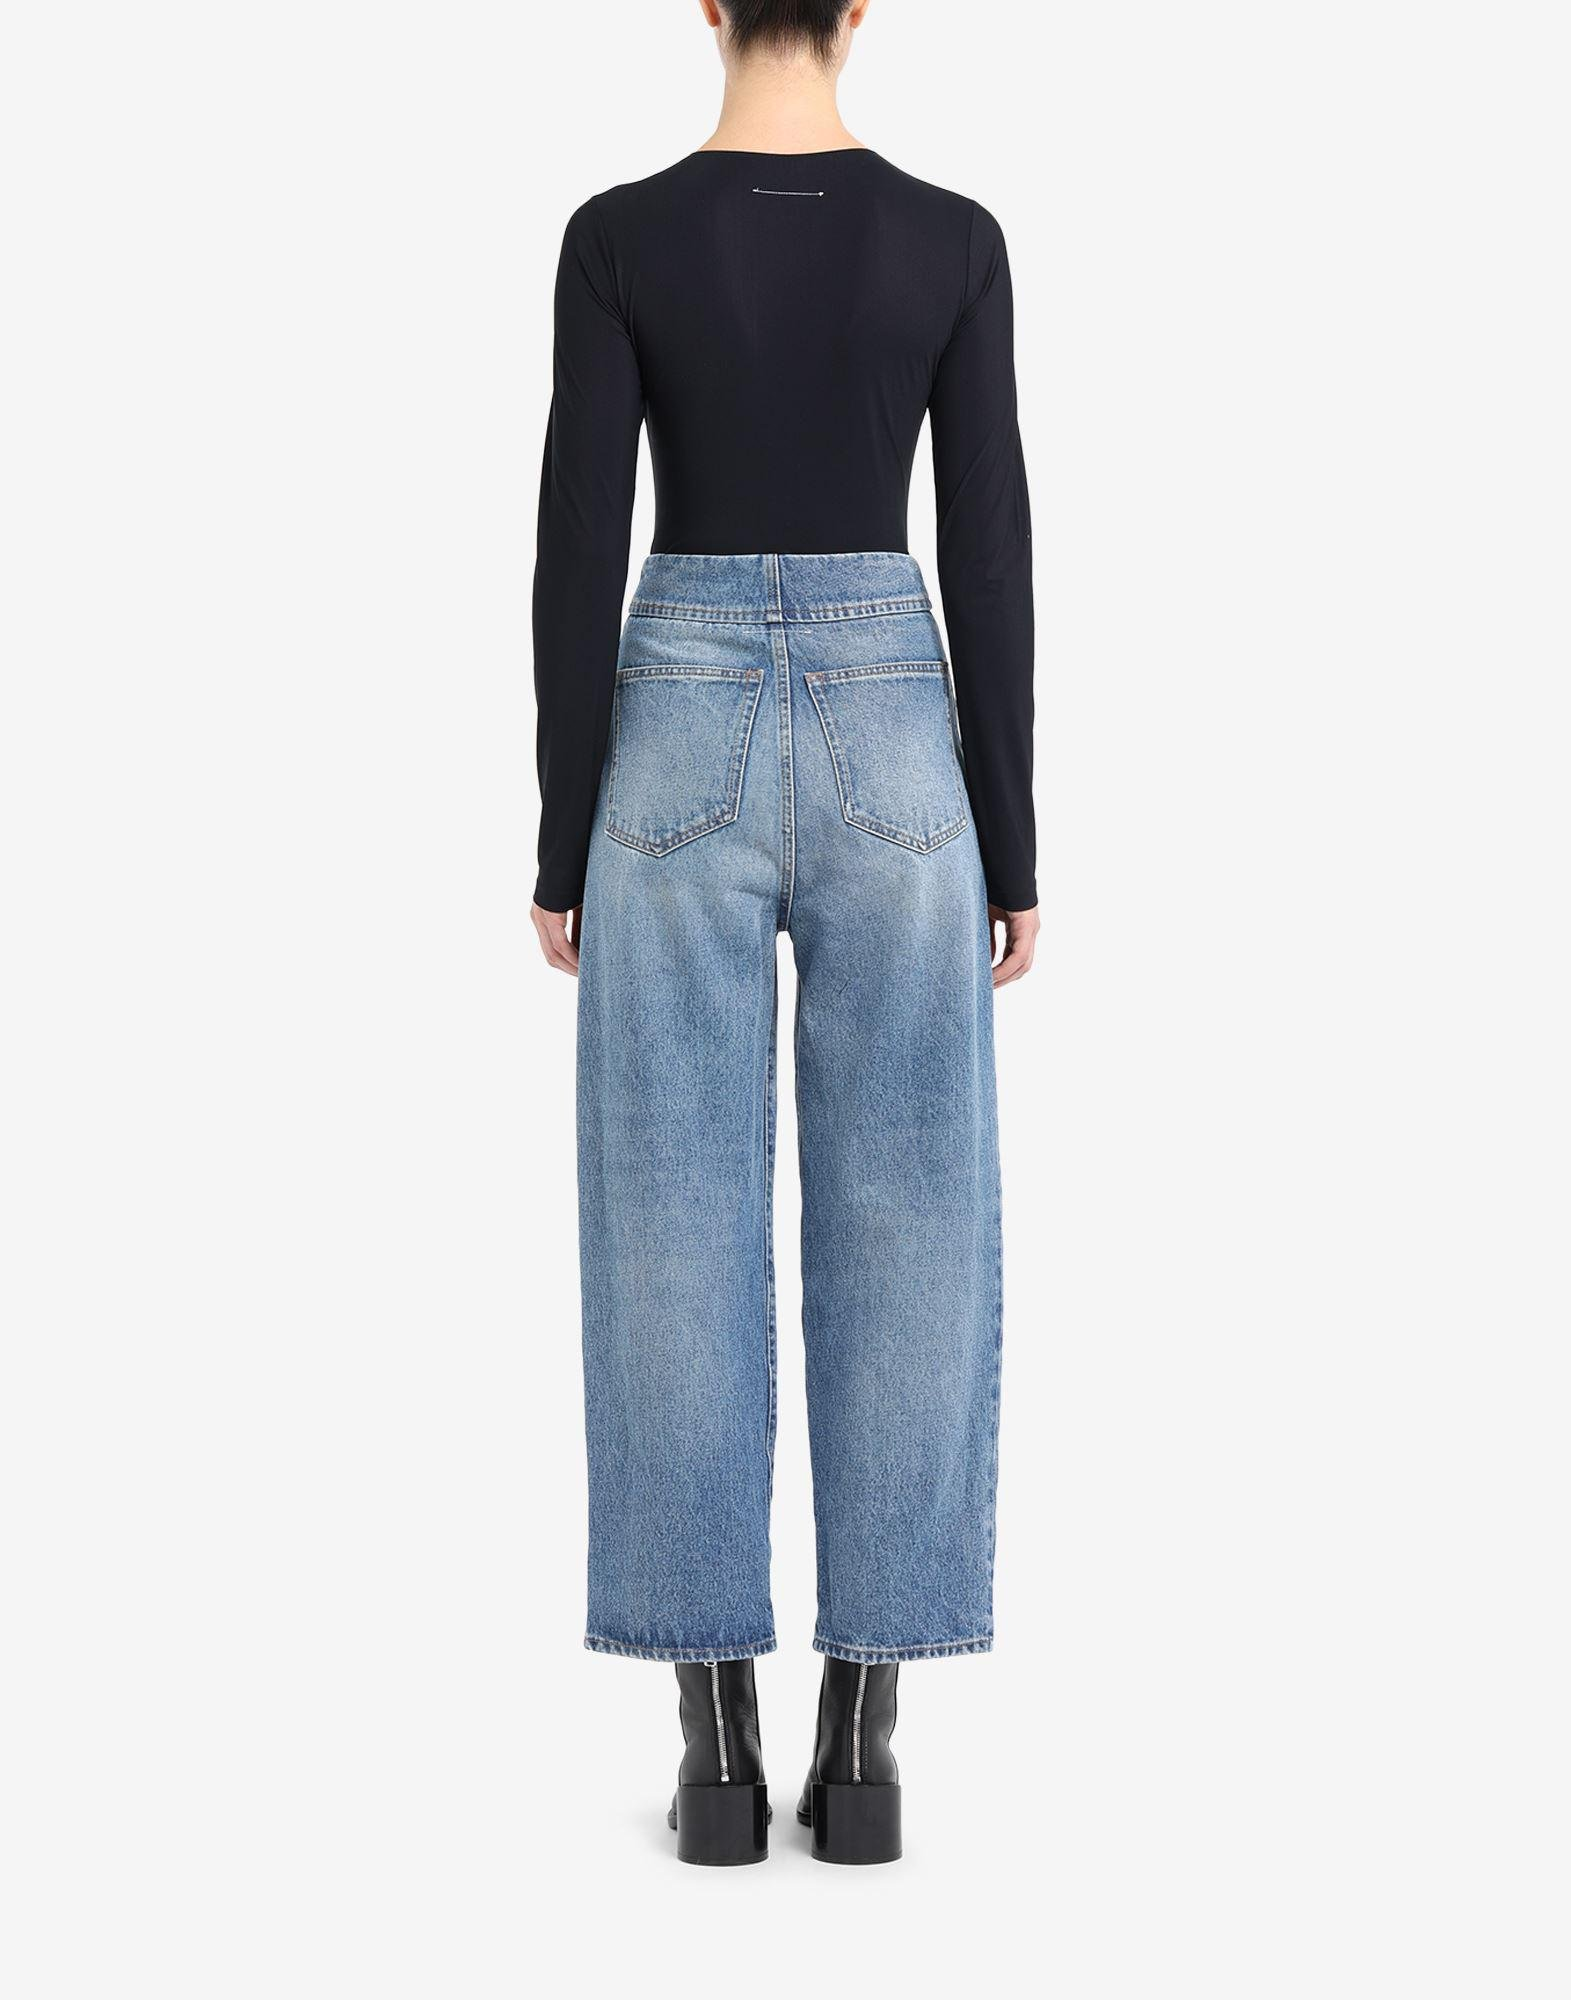 Carrot jeans 2